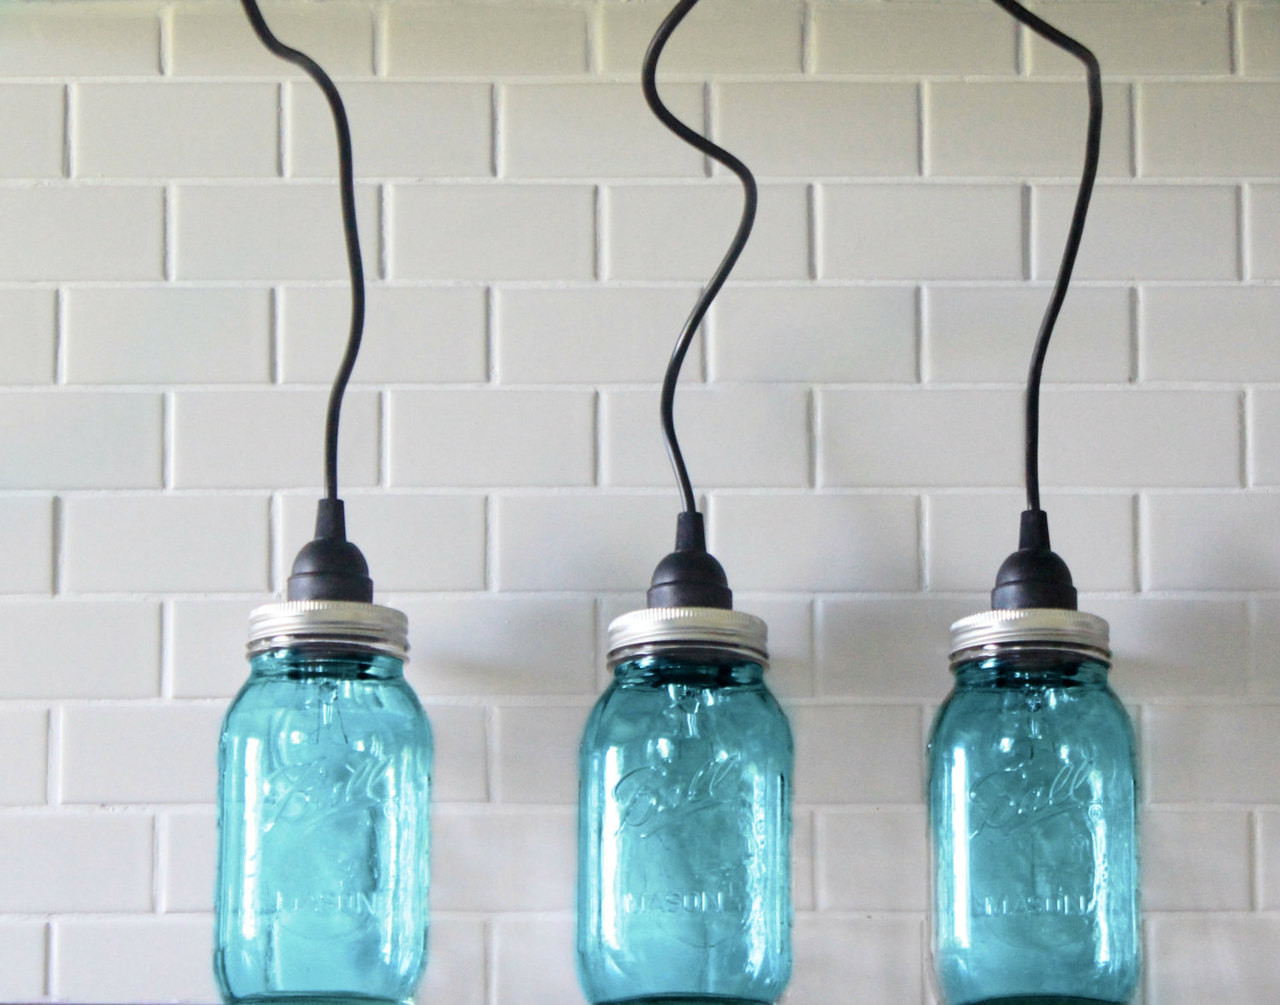 Mason Jar Lighting Set Of 3 Hanging Large Blue Mason Jar Pendant Lights Handmade Rustic Country Light Fixture Pendent Lighting Kitchen Light Haddock Industrial